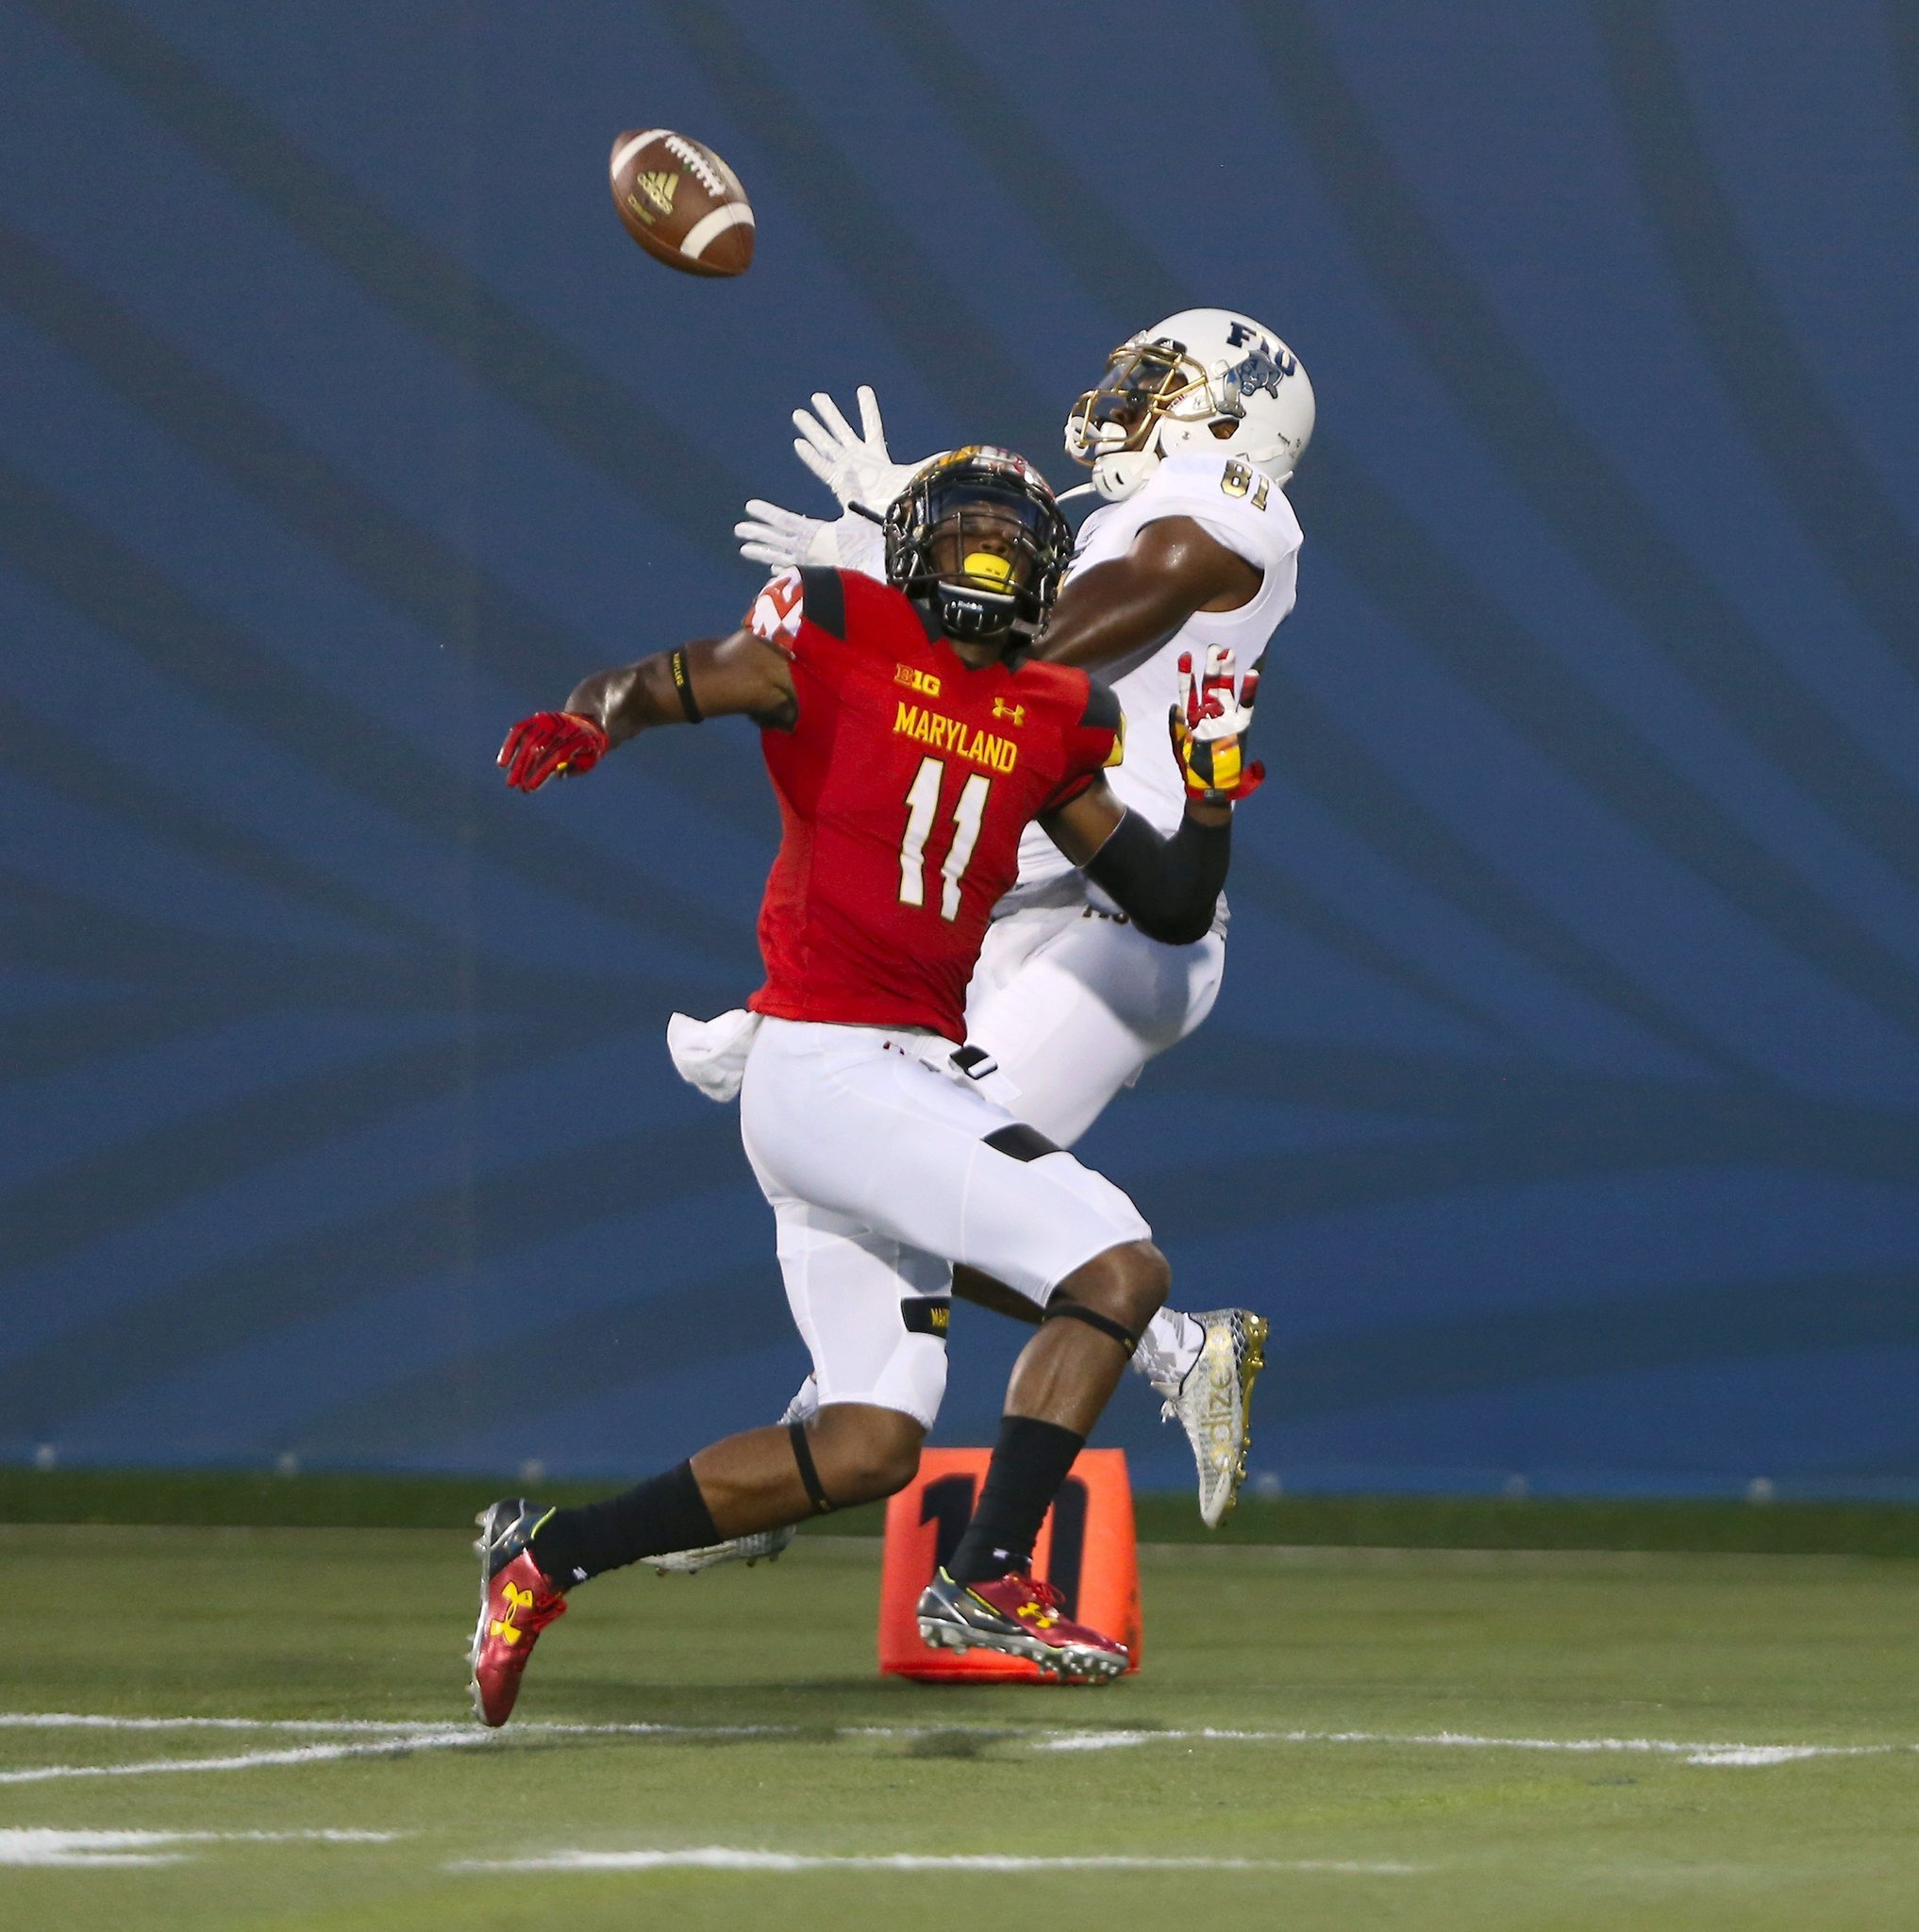 Bal-maryland-defensive-back-denzel-conyers-announces-he-s-received-a-fifth-year-of-eligiblity-20170324